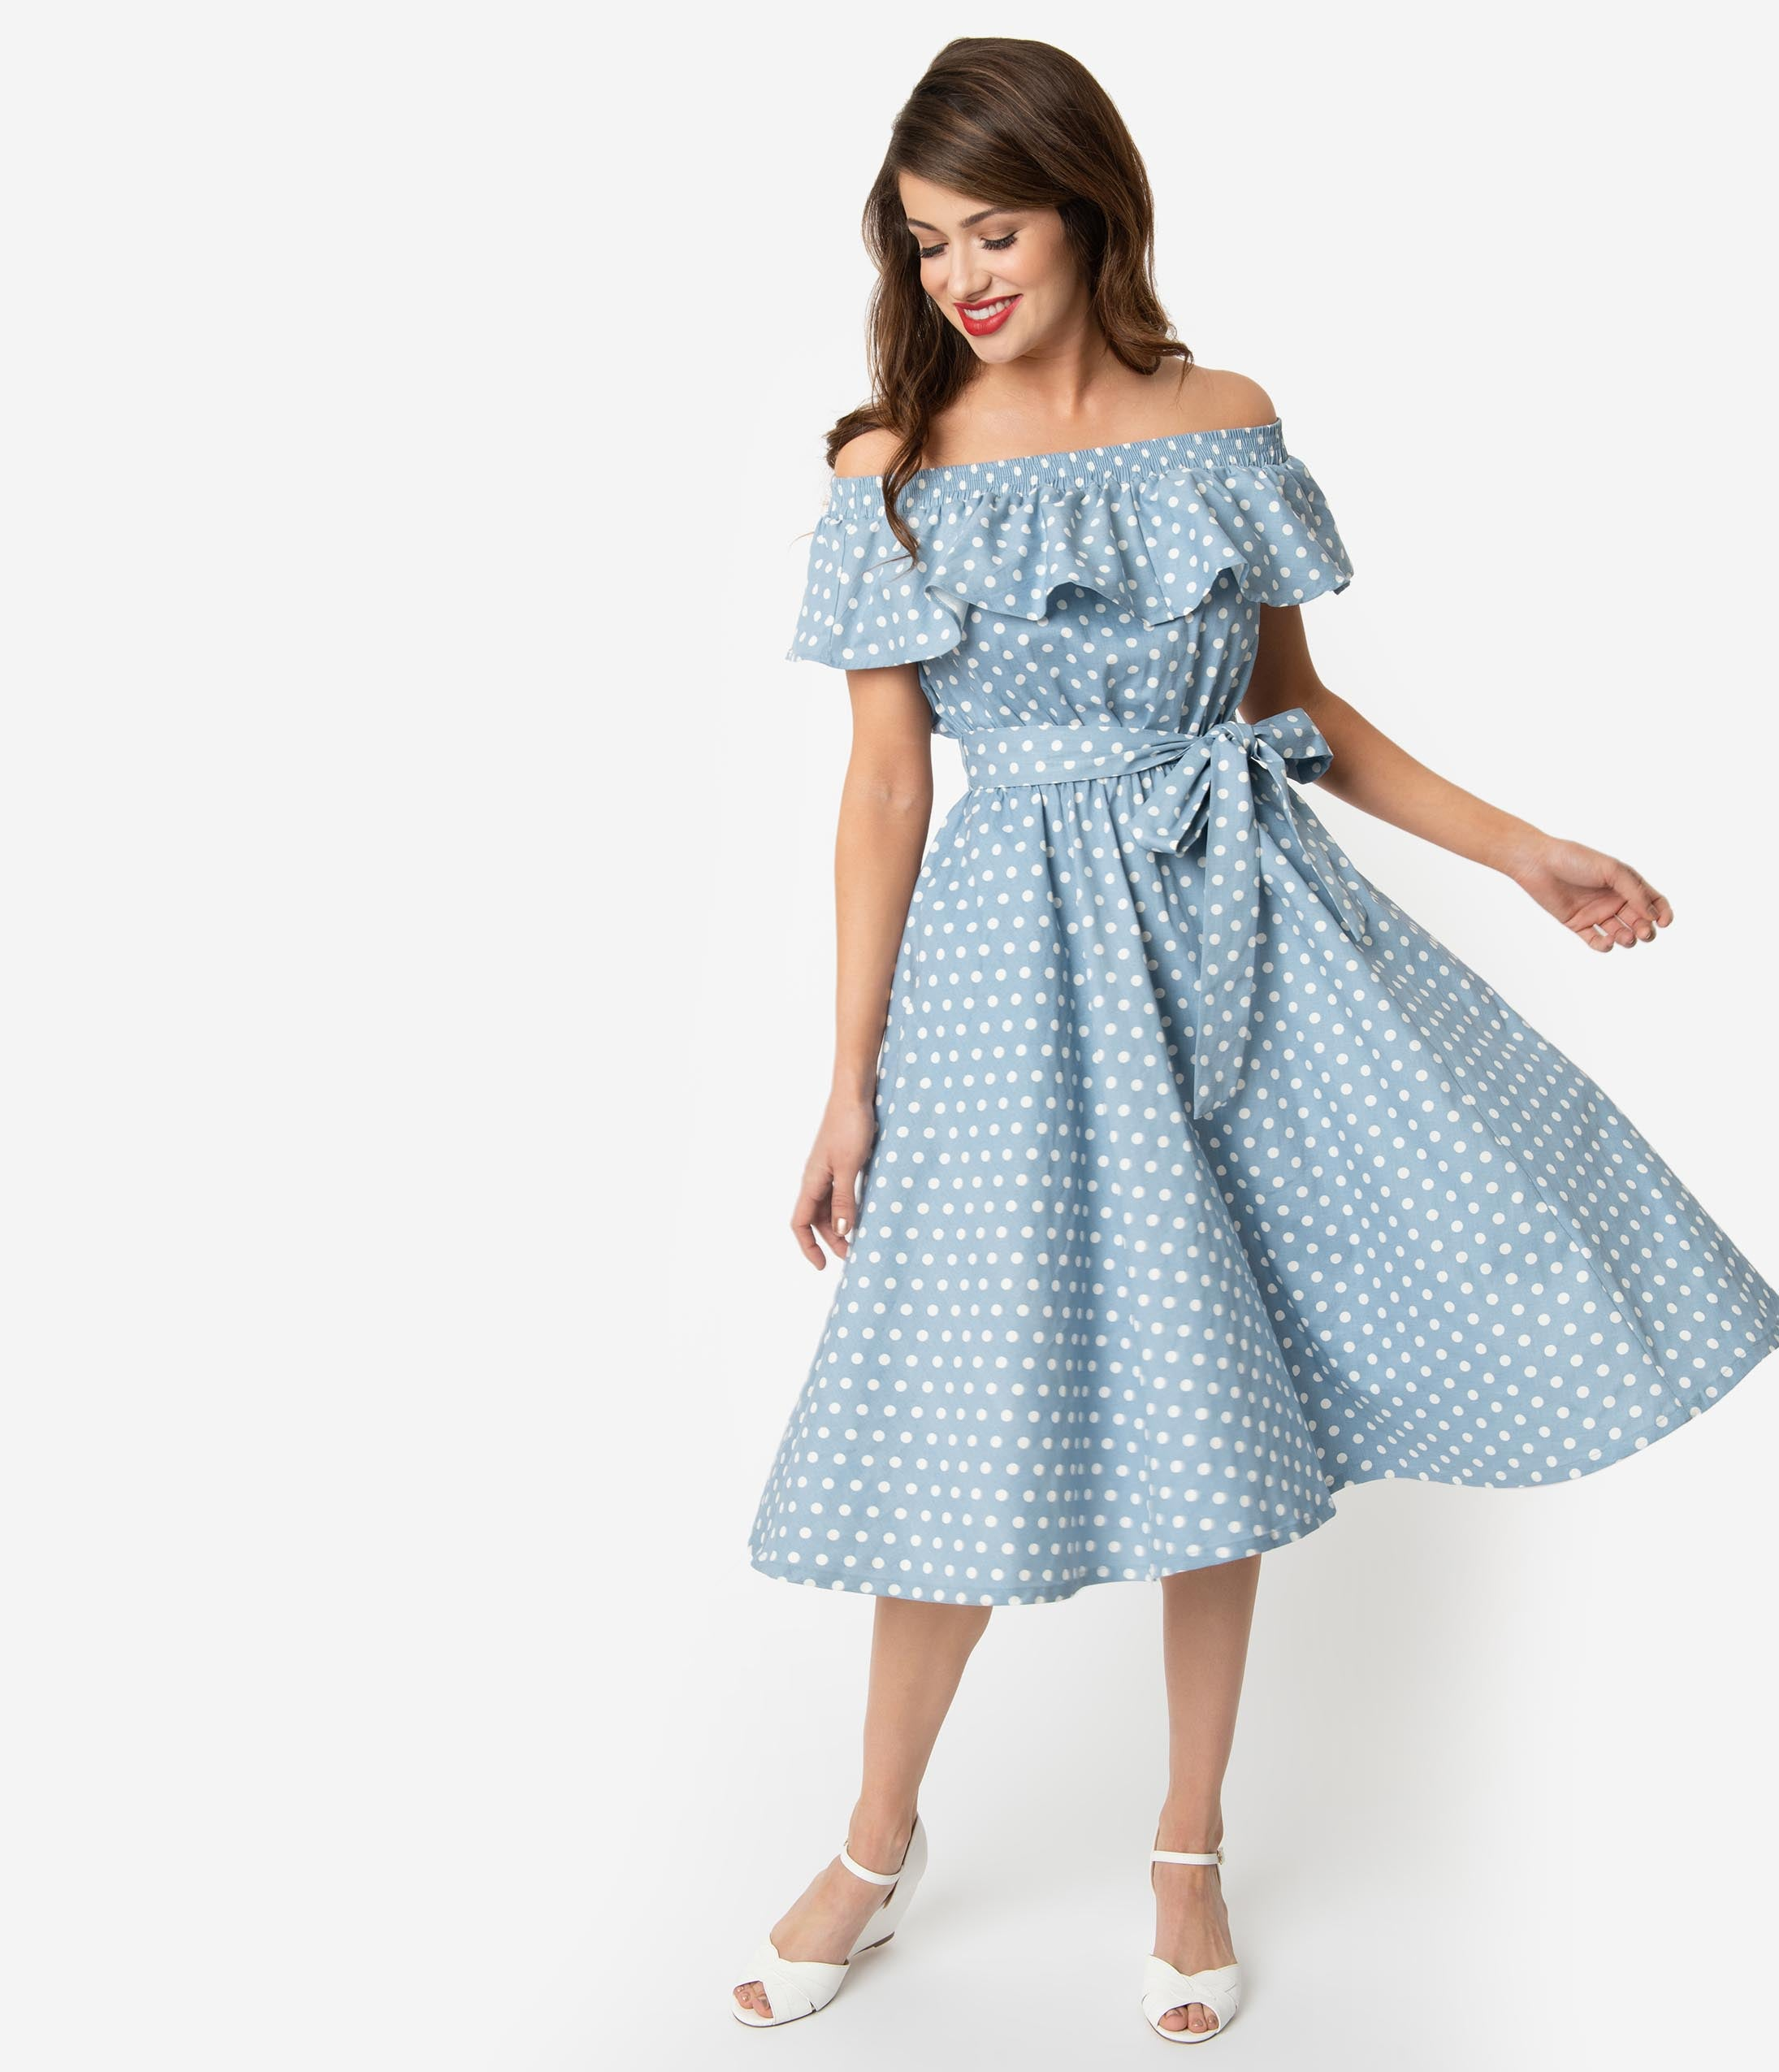 da4368fa87b Unique Vintage Dusty Blue   White Polka Dot Off Shoulder Ruffle Nashville  Swing Dress